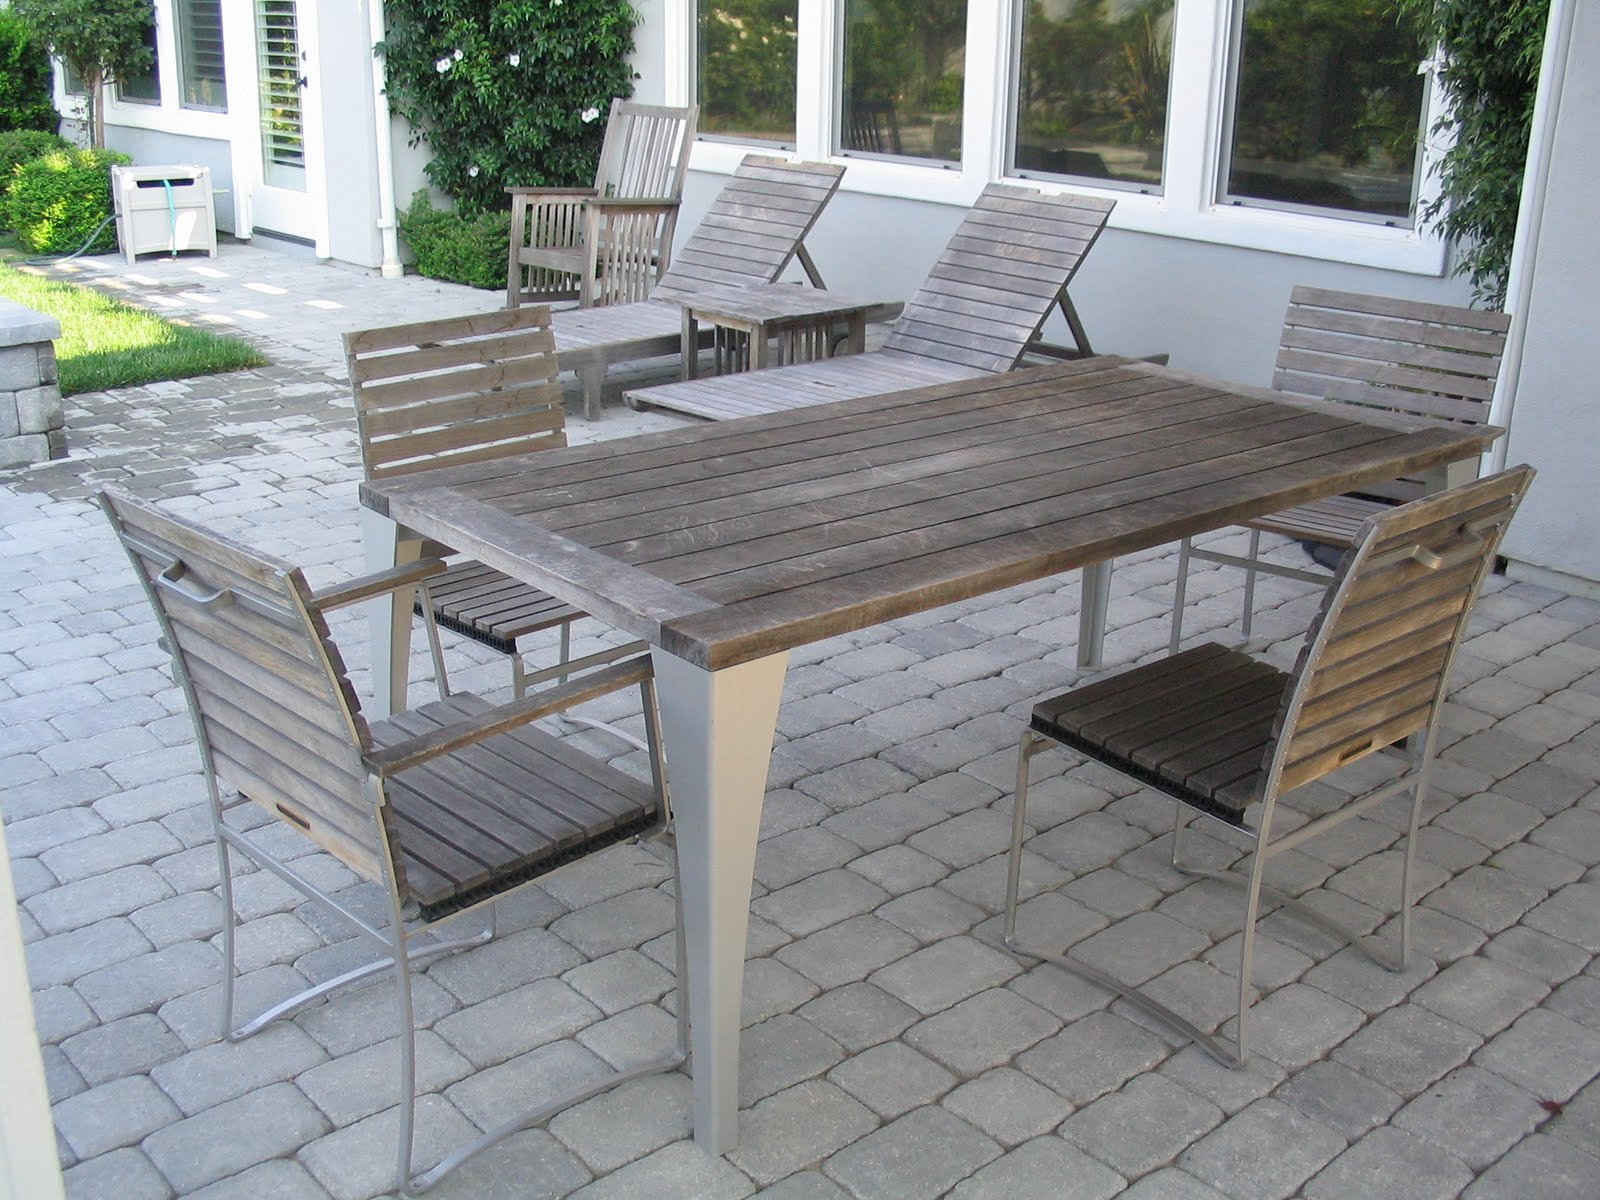 Teak Restoration In Los Angeles Has Been Perfected By Teak Master! We  Understand That Maintaining Your Teak Furniture May Have Slipped Your Mind.